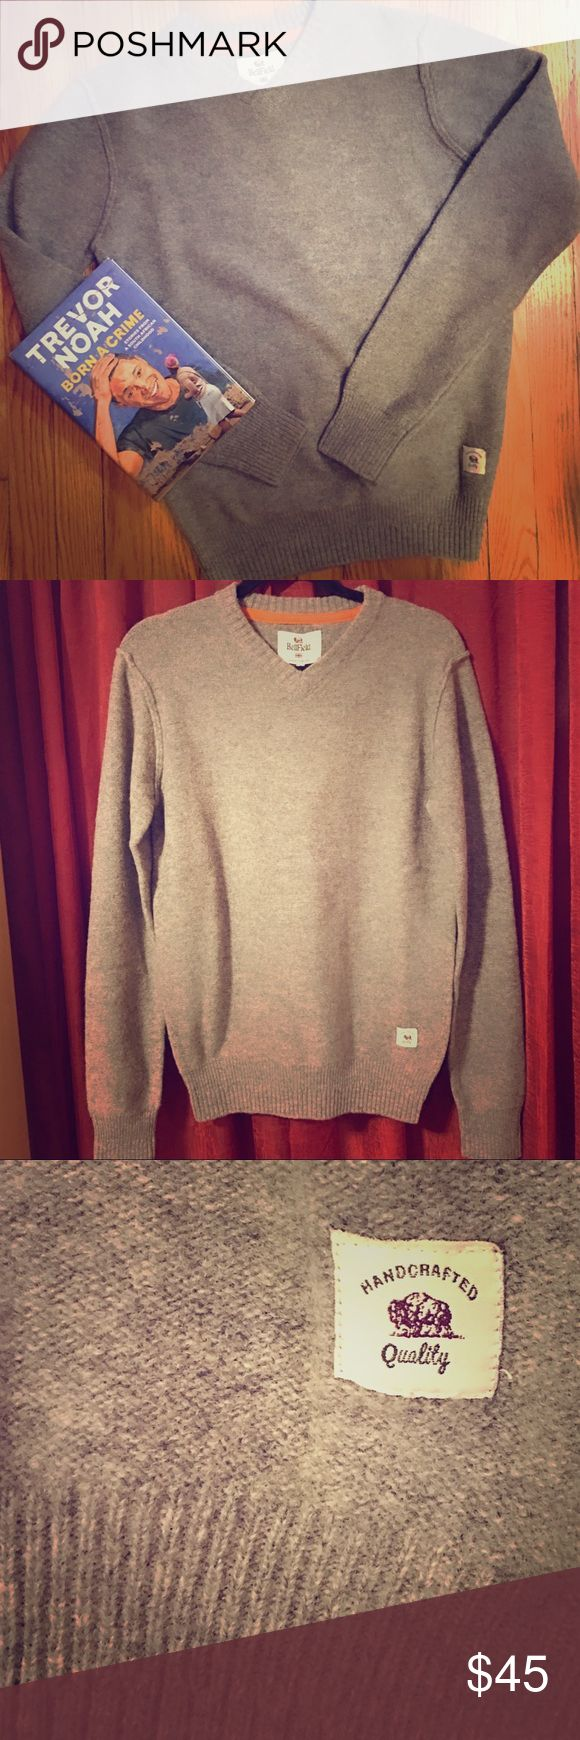 🆕👨🏽Sweater: NWT Gray/Brown Felix Vneck (S) NWT!!! Gray/light brown v neck sweater (S) from Bellfield Clothing Company in Great Britain. Handmade. Ribbed hemline, sleeve cuffs and Vneck trim. Gray/brown color, Lambswool 80%/Nylon 20% blend. Wash w/ similar colors then reshape to dry flat. (Or just dry clean & let someone else do the work?) Original Retail $69.99-$79.99. NWT! Bellfield Sweaters V-Neck